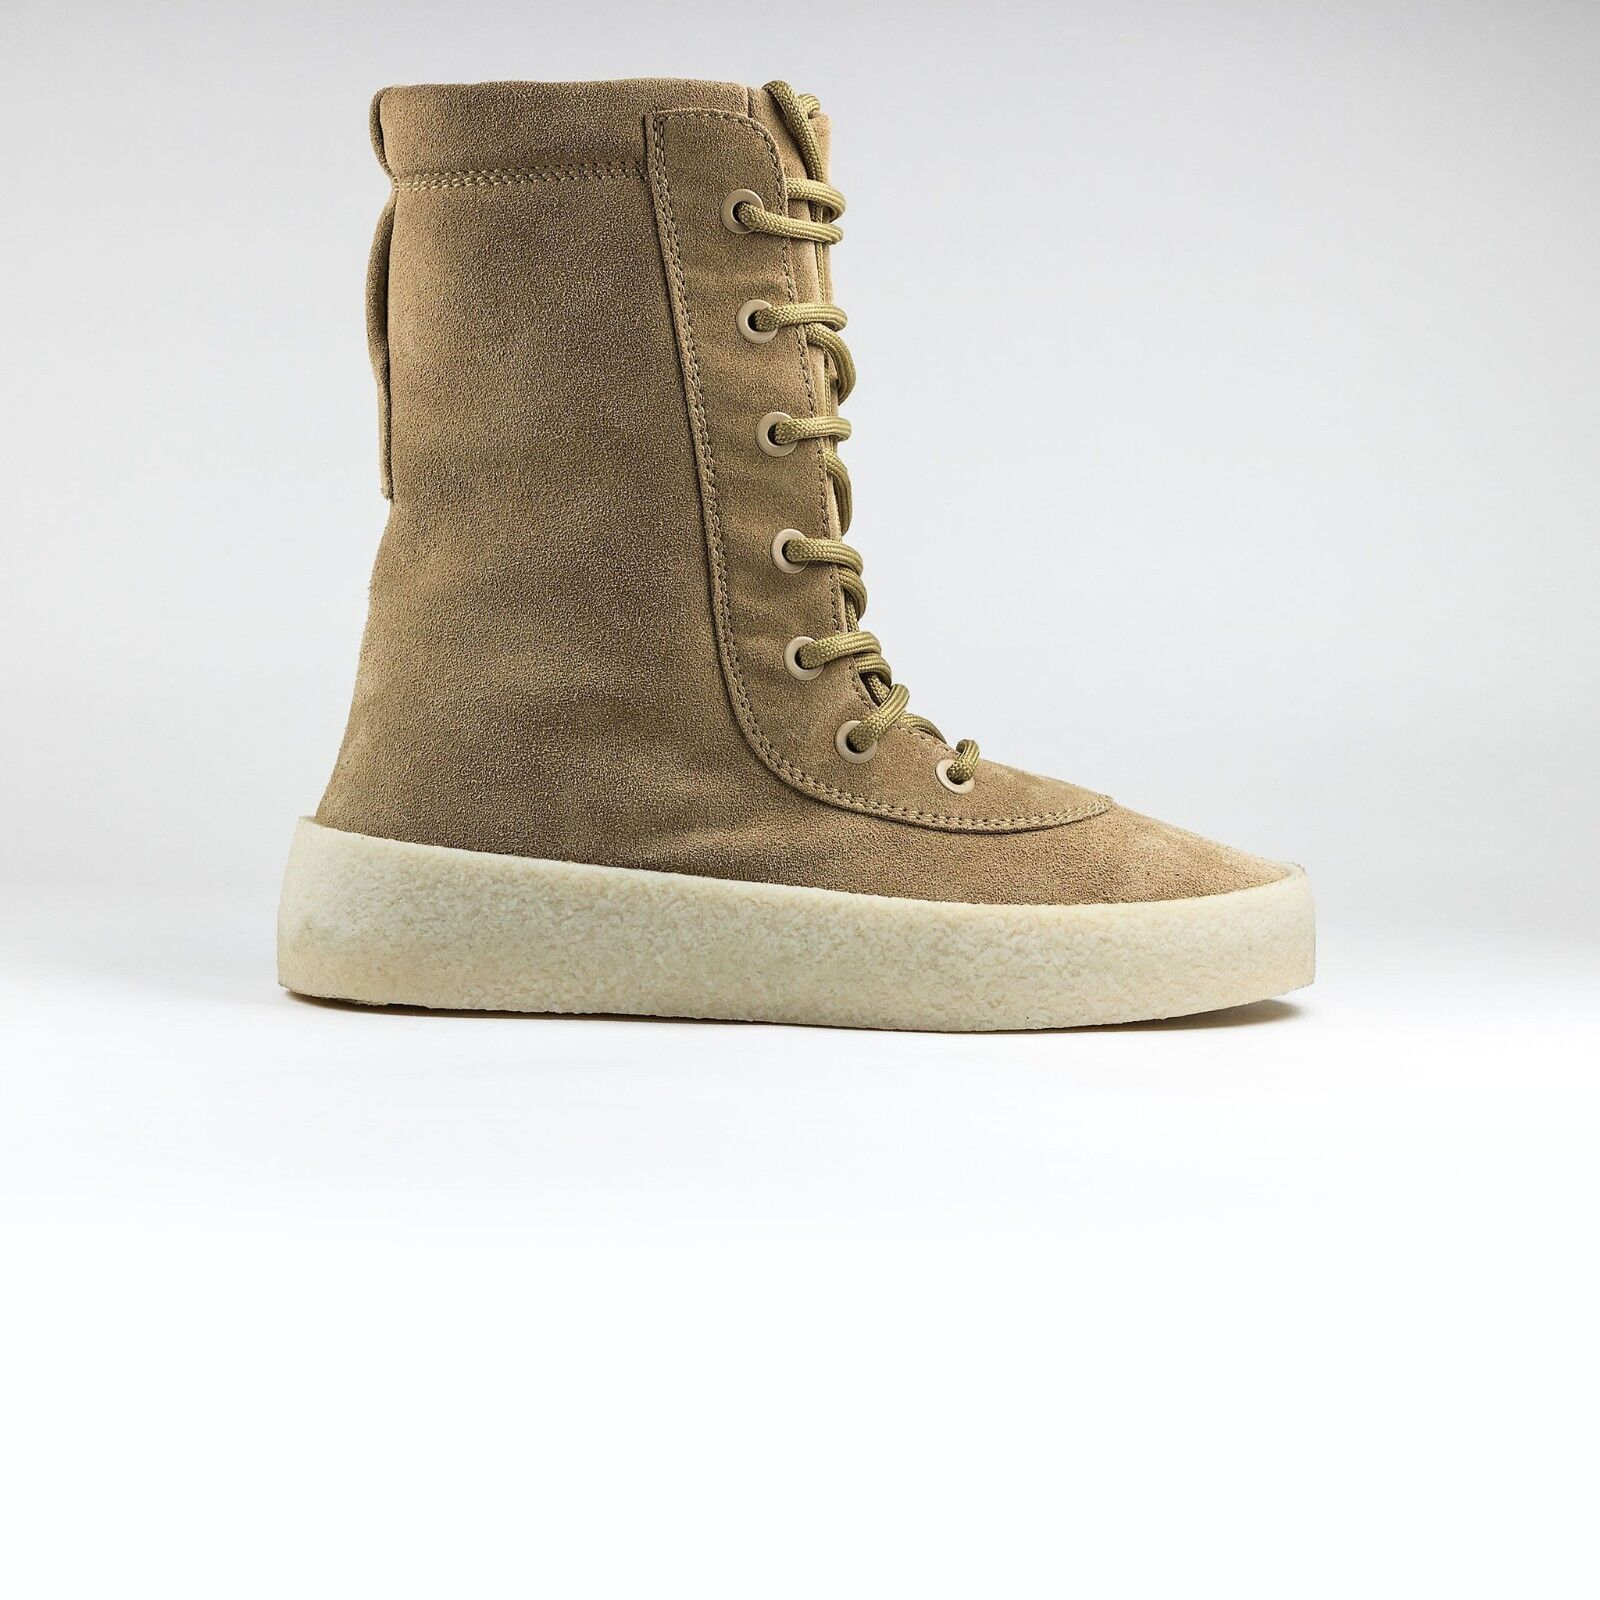 Authentic New Yeezy Season 2 Crepe Boots Suede Tan